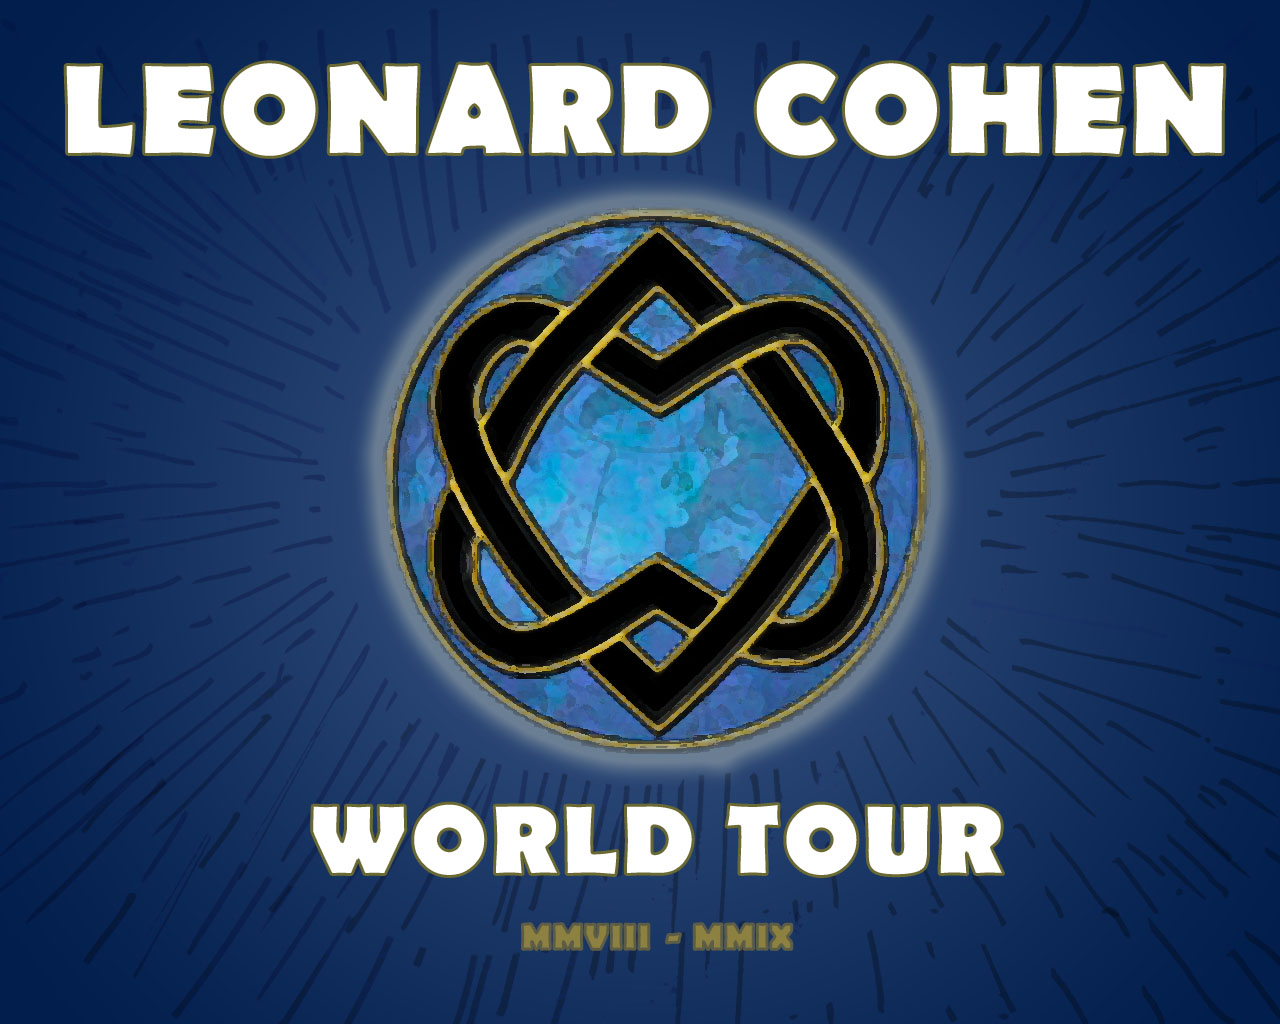 LC world tour copy.jpg